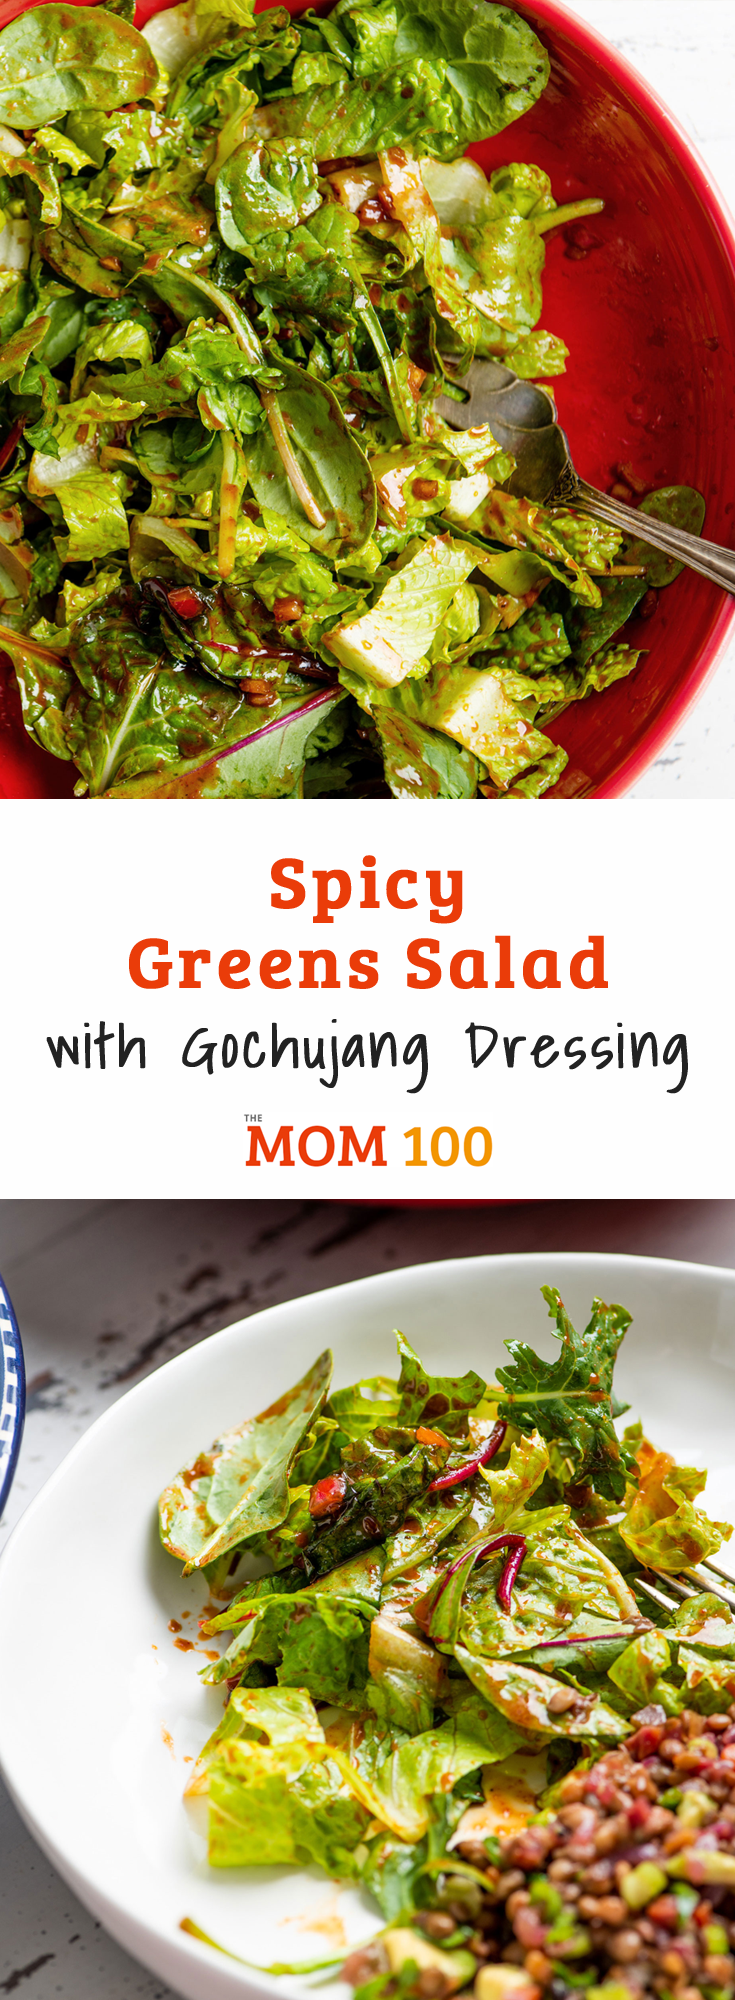 Spicy Greens Salad with Gochujang Dressing: A dressing with some punch, thanks to a hint of gochujang, a Korean chili paste you should get to know!